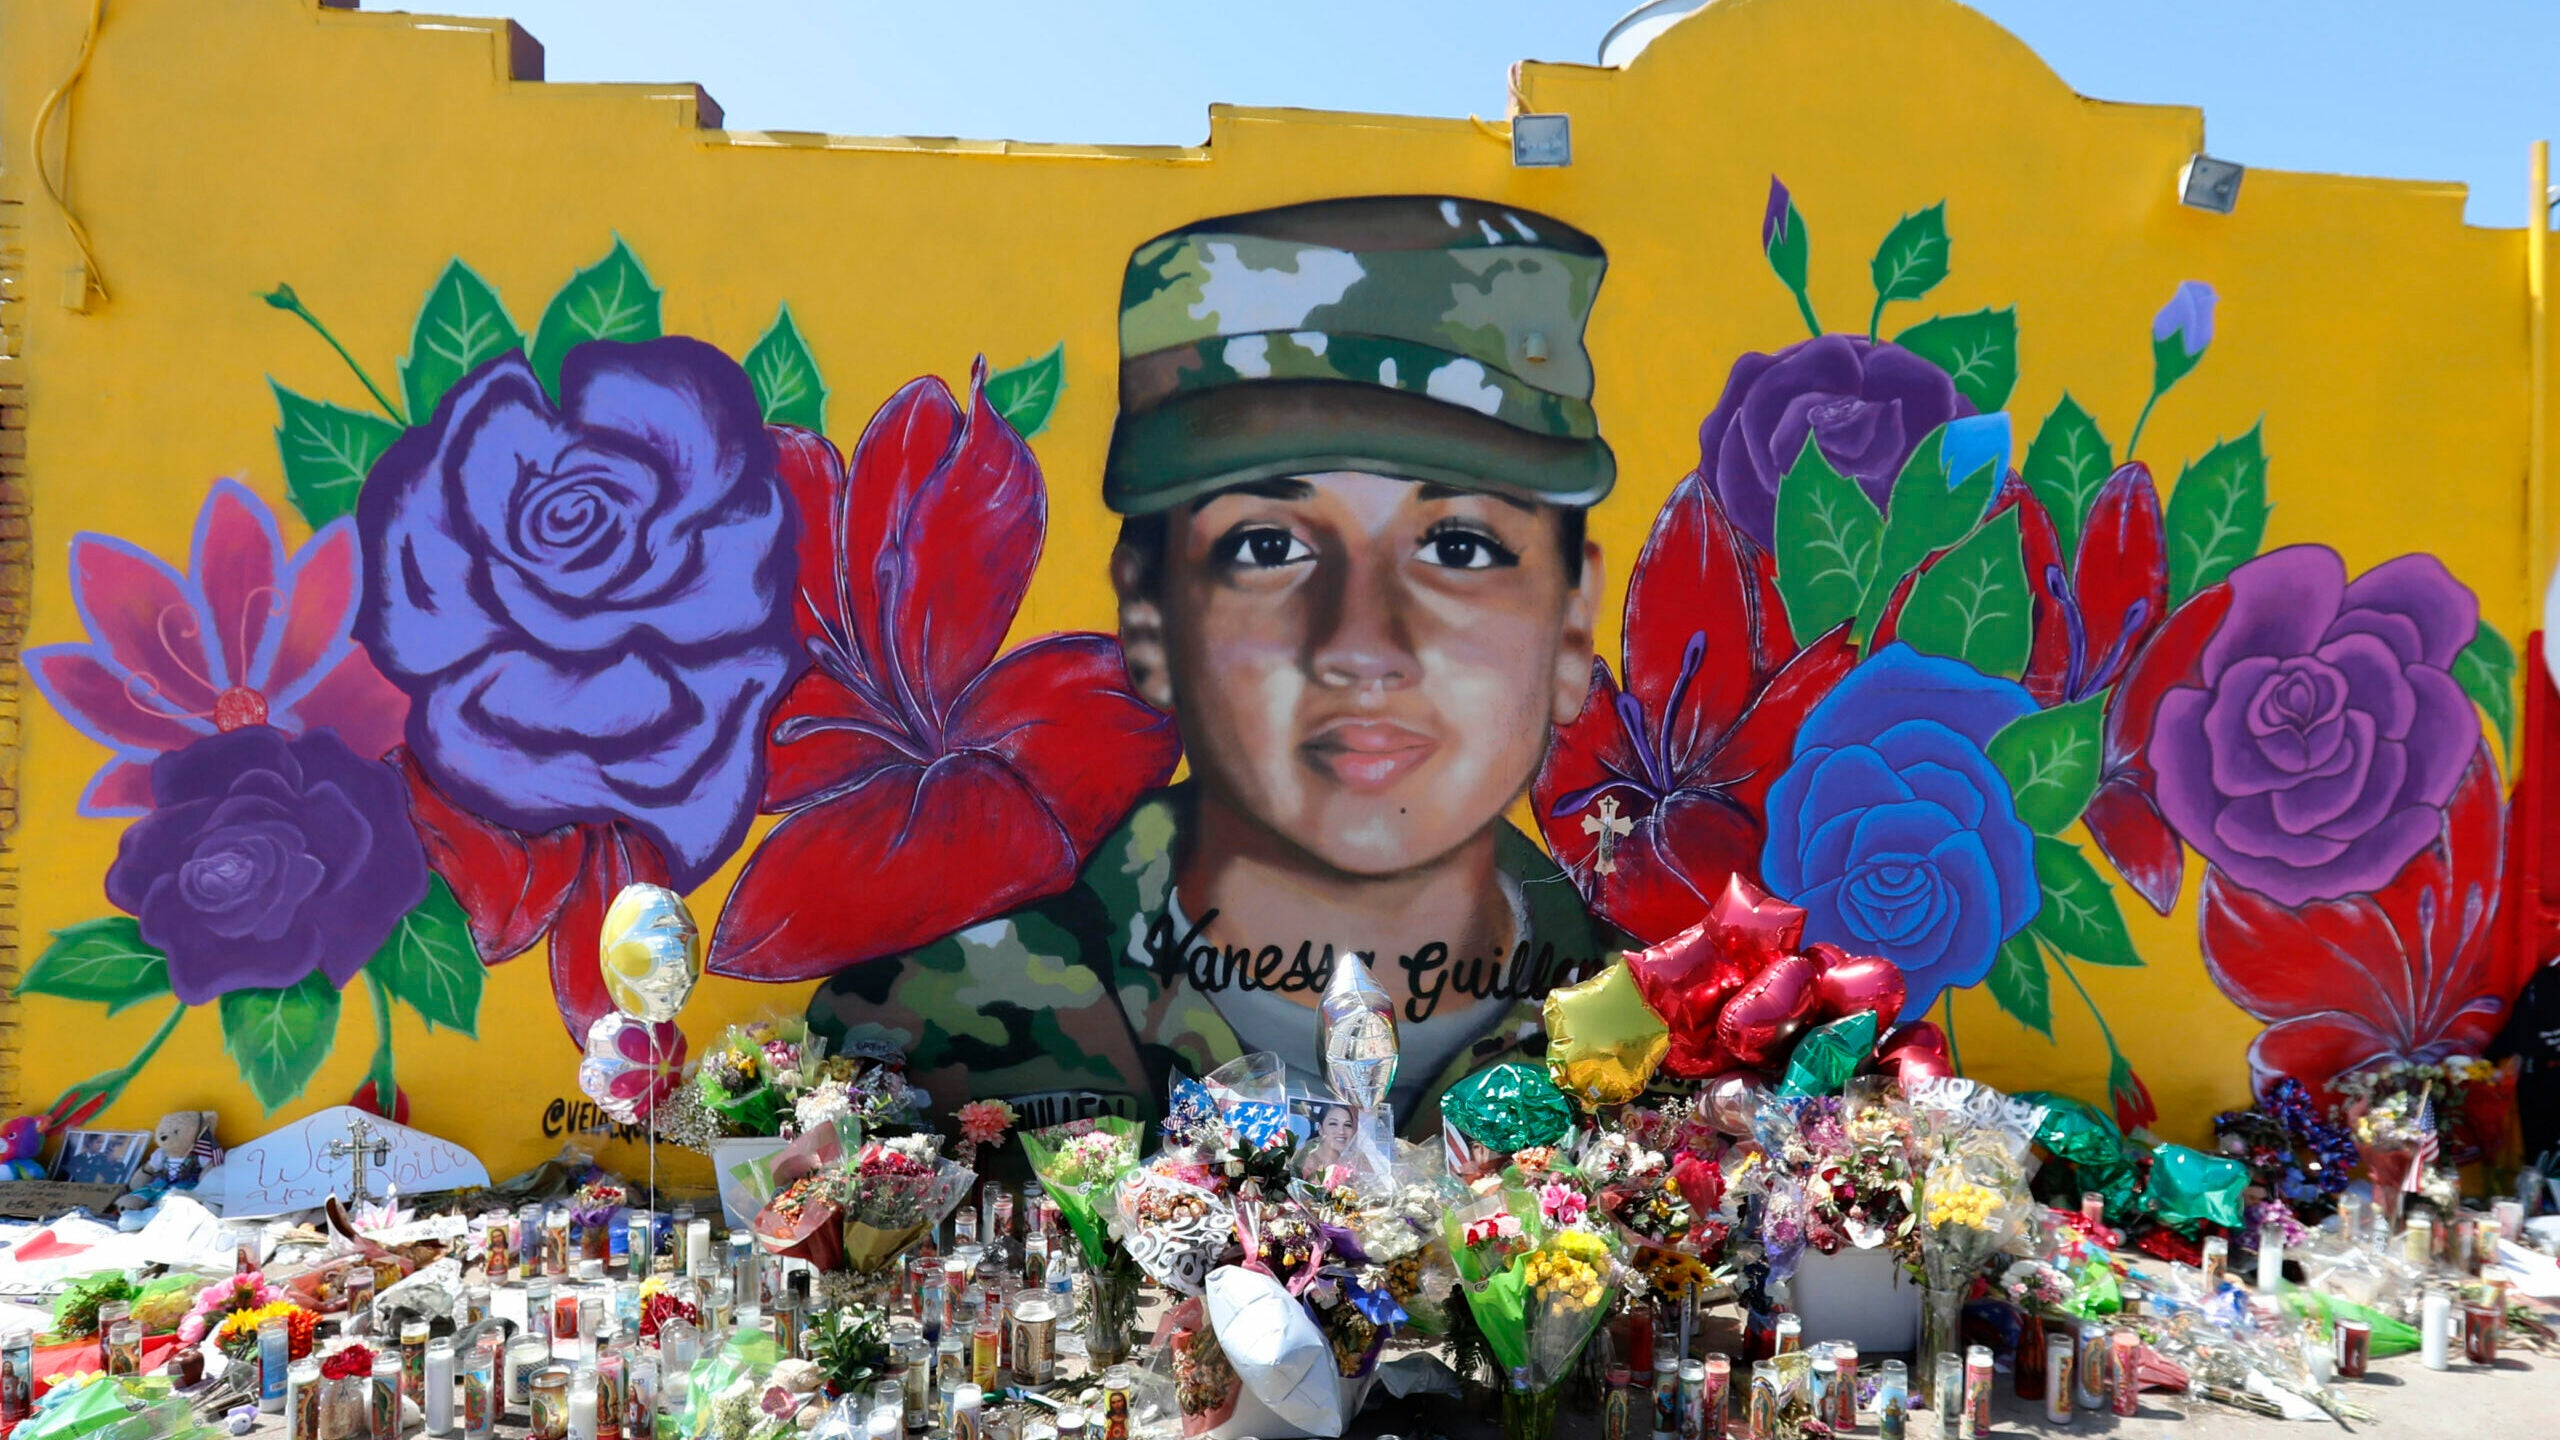 14 Fort Hood leaders fired or suspended in fallout over Spc. Vanessa Guillén's death